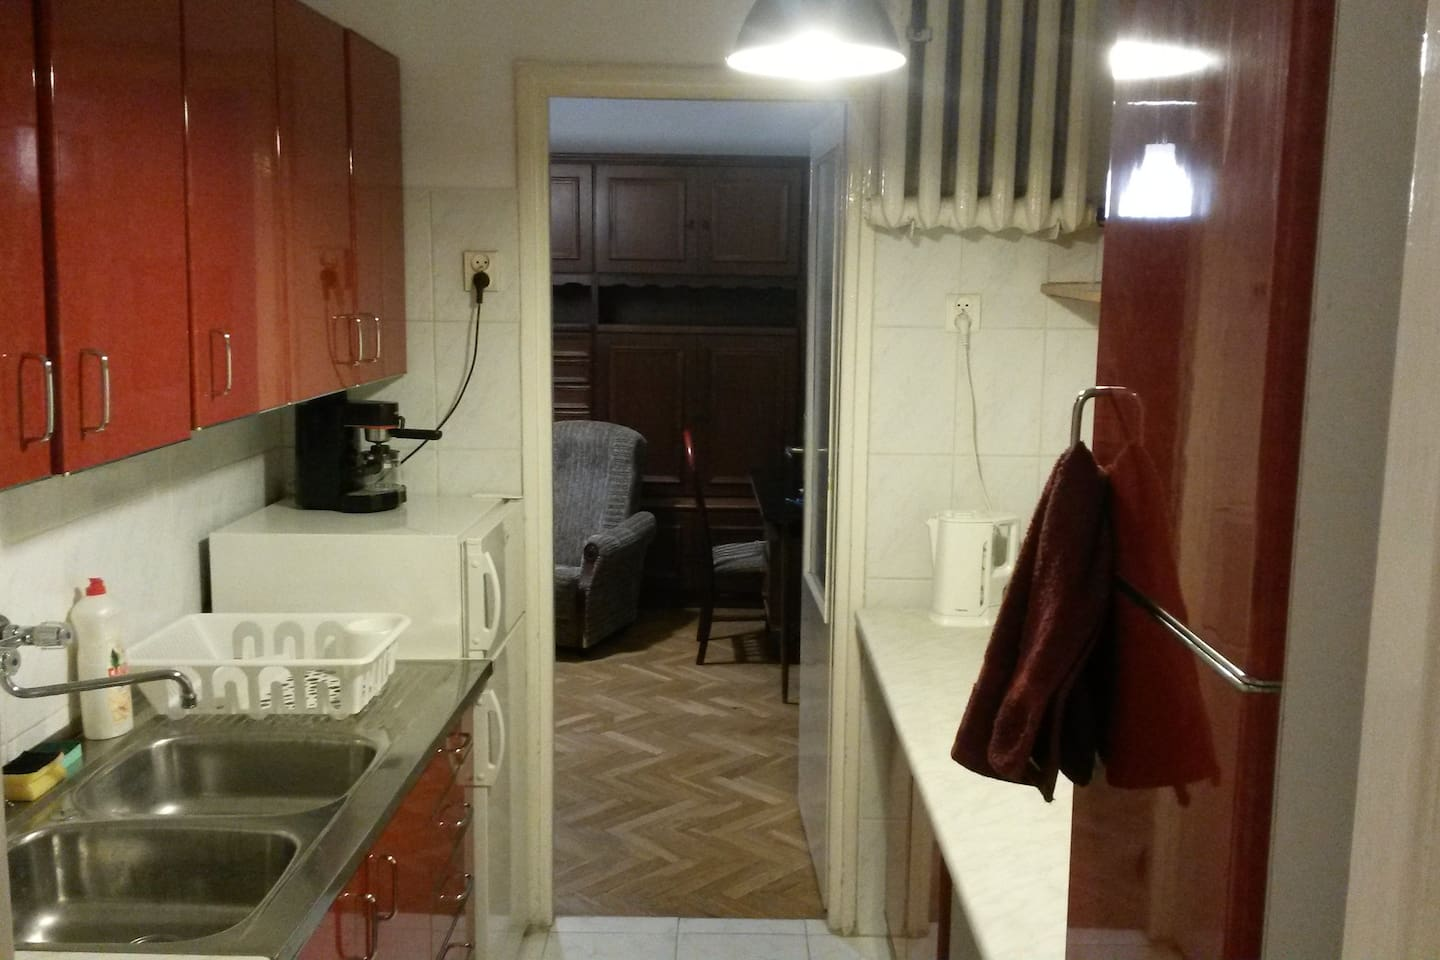 Welcome to a typical PRL(communist time Poland) flat in a block of flats in the centre of Lodz!